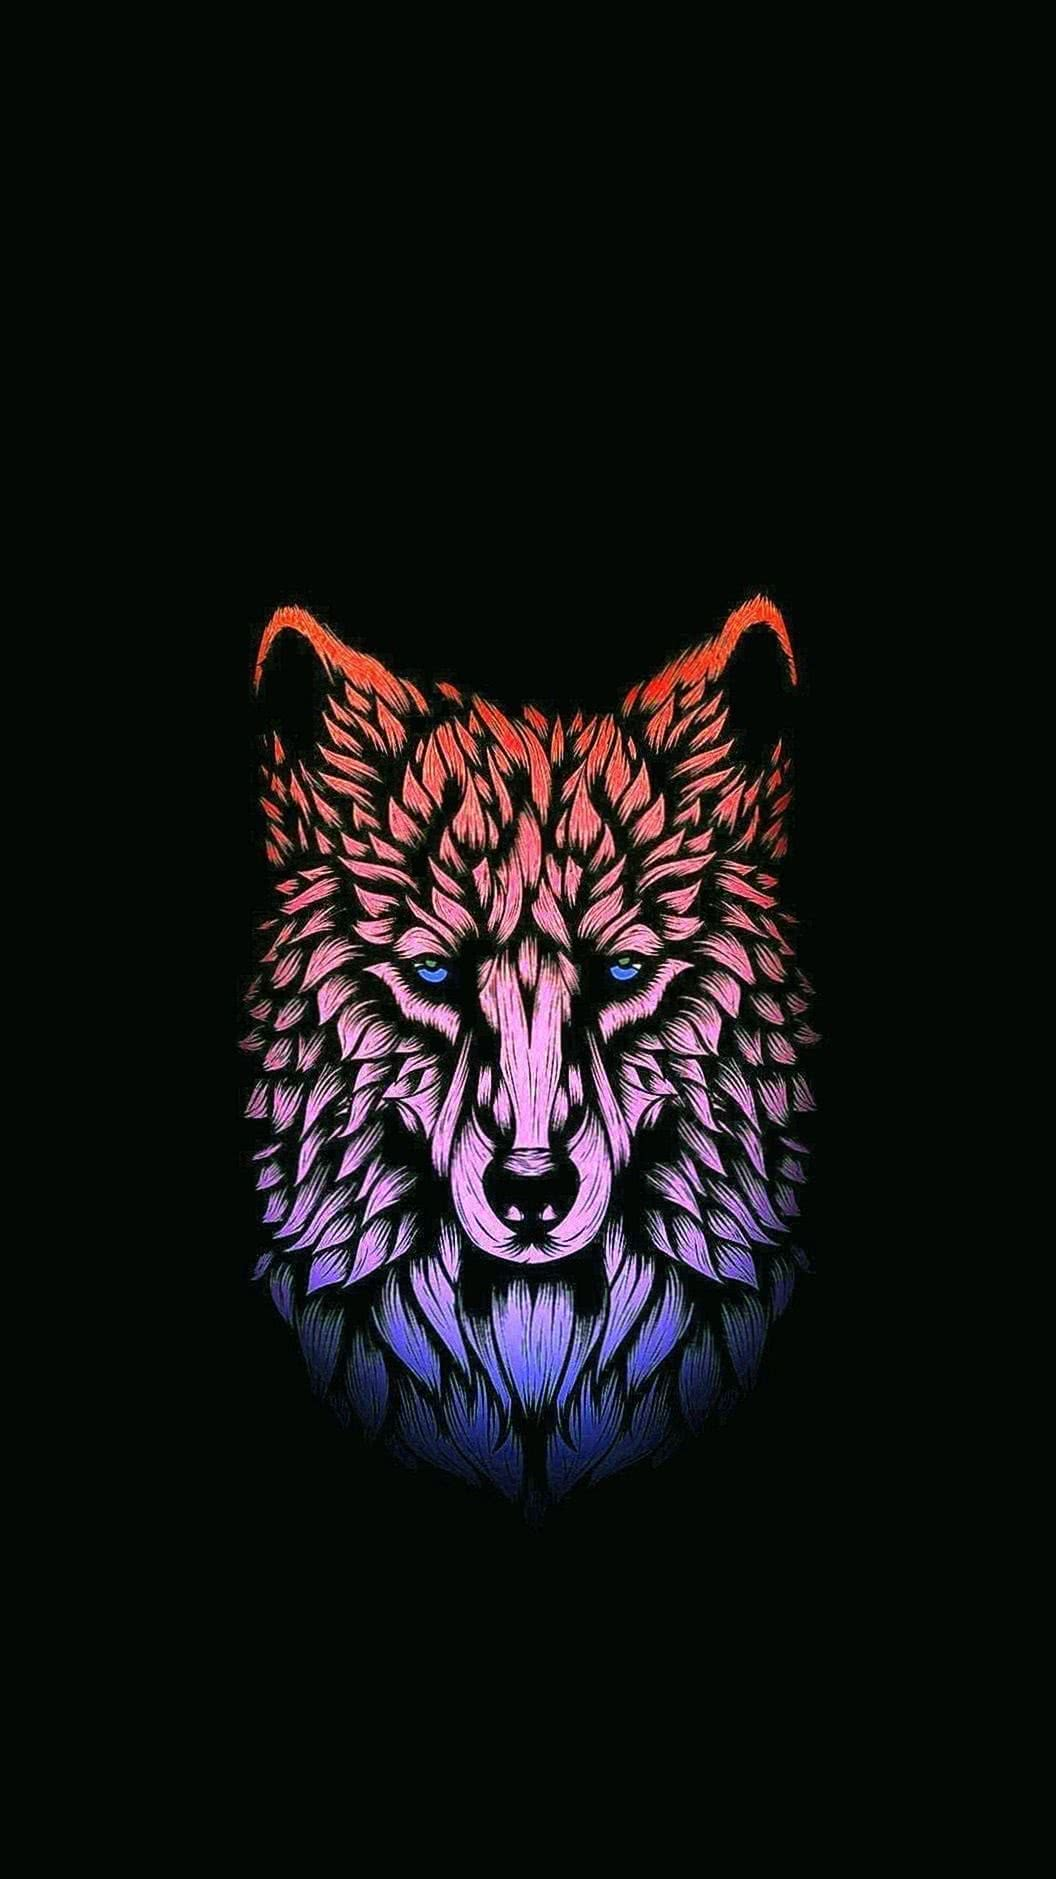 Amoled Wallpapers Wolf Wolf Wallpapers Pro